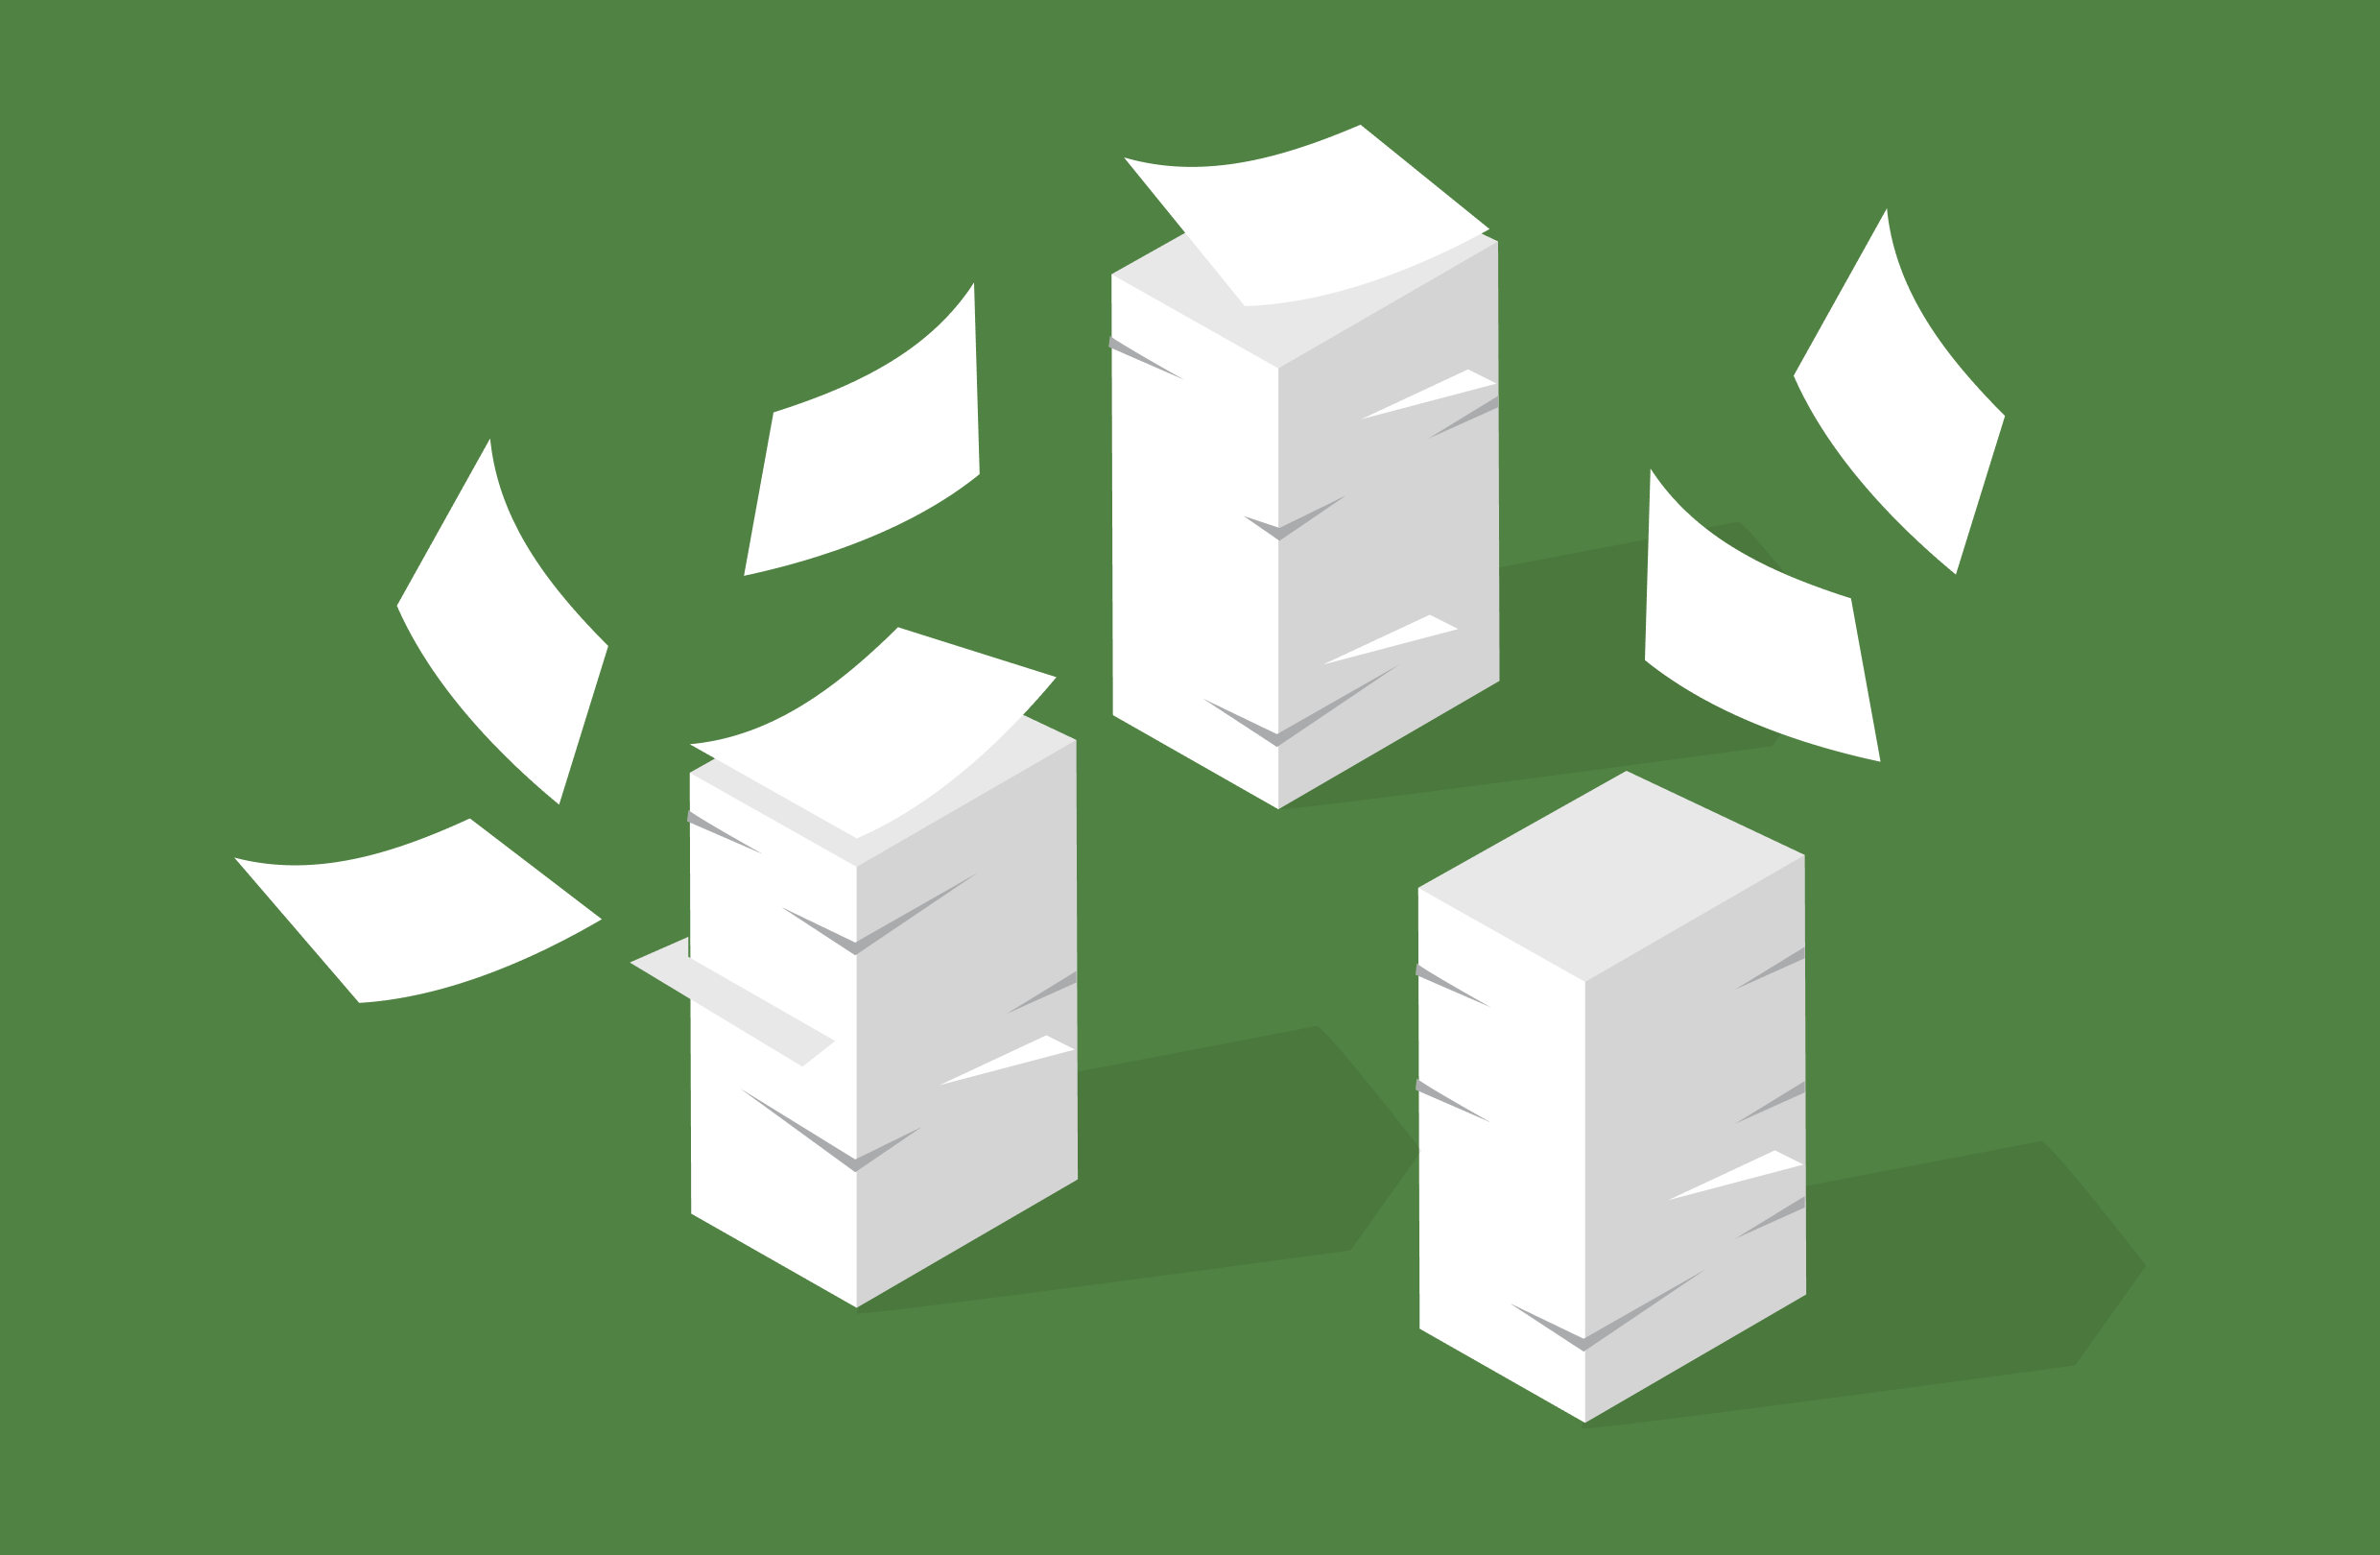 A pile of documents, stacked to overflowing